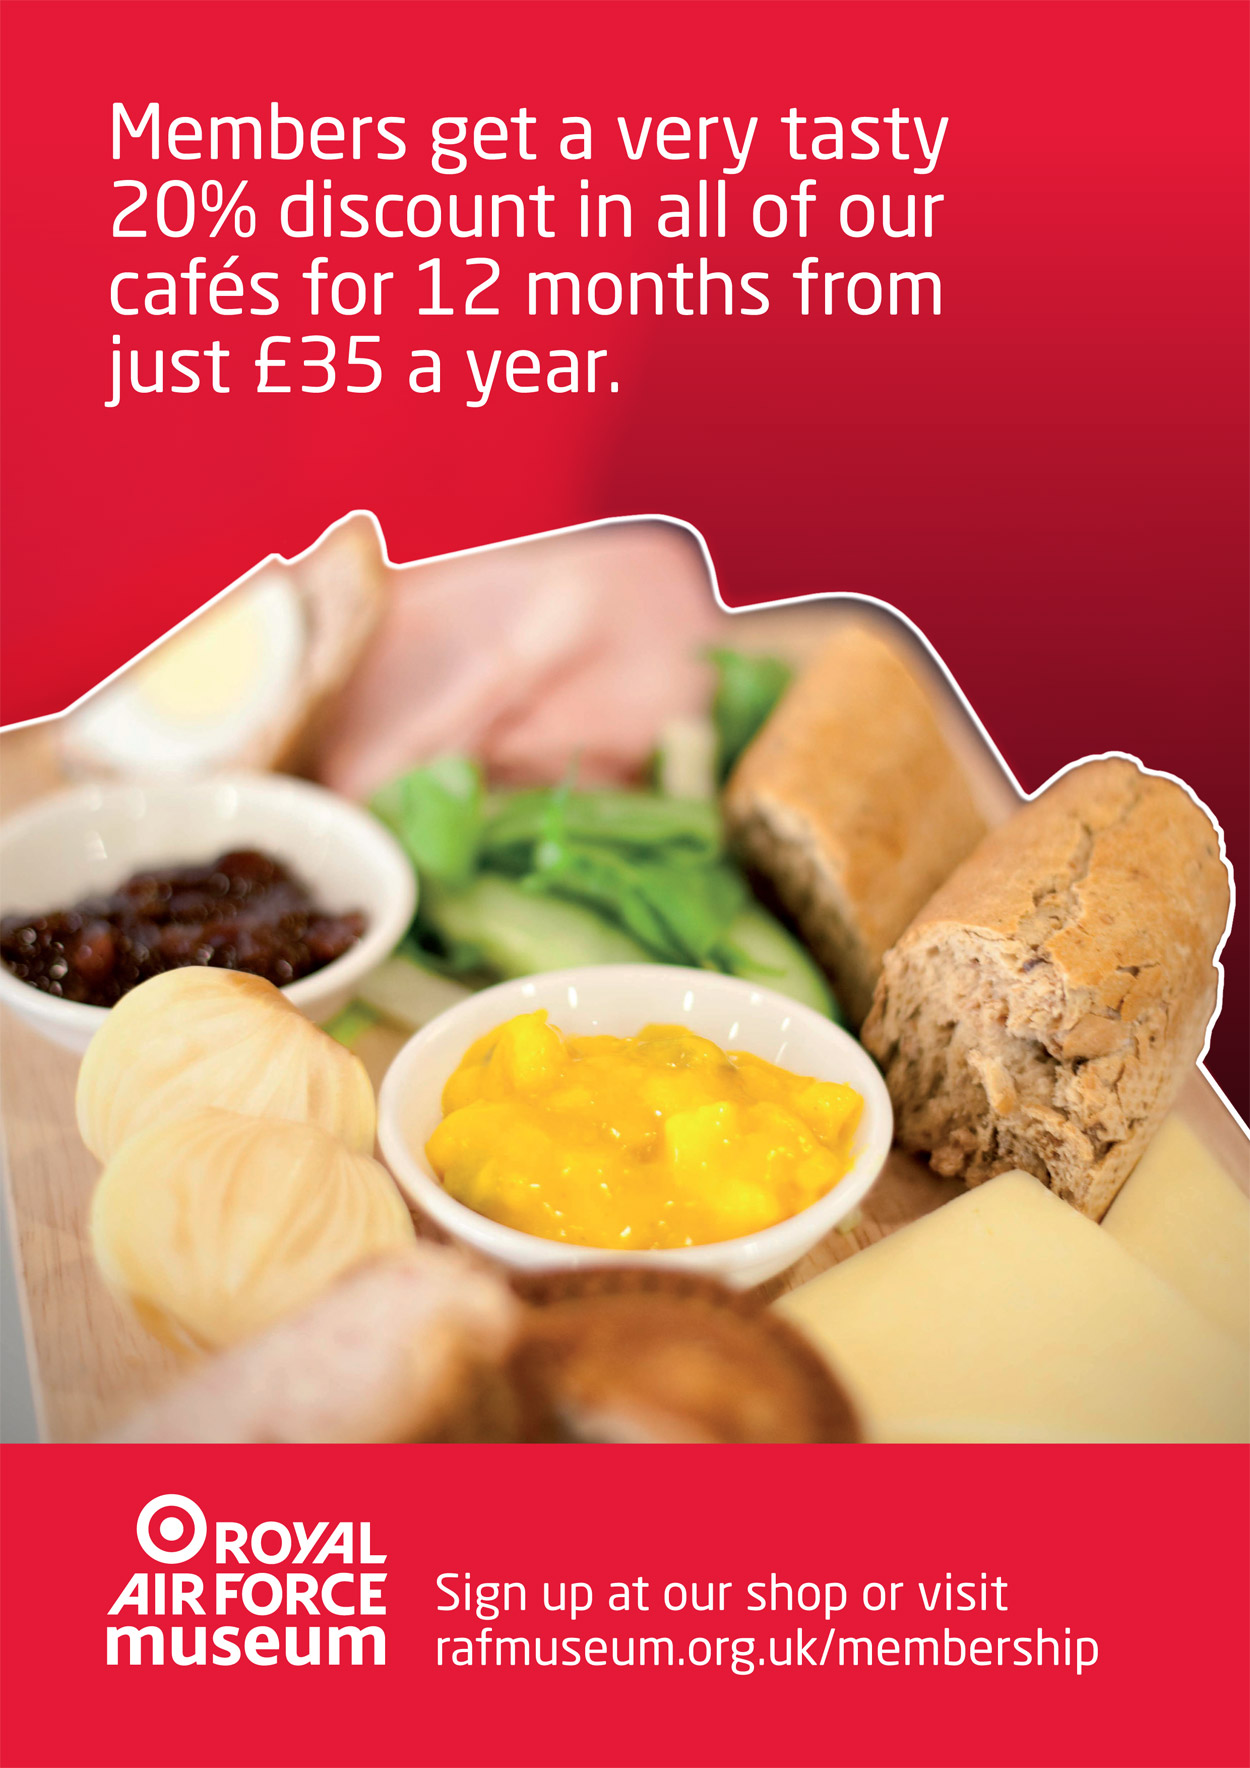 Members get a tasty 20% discount in our cafes for 12 months for just £35 a year.